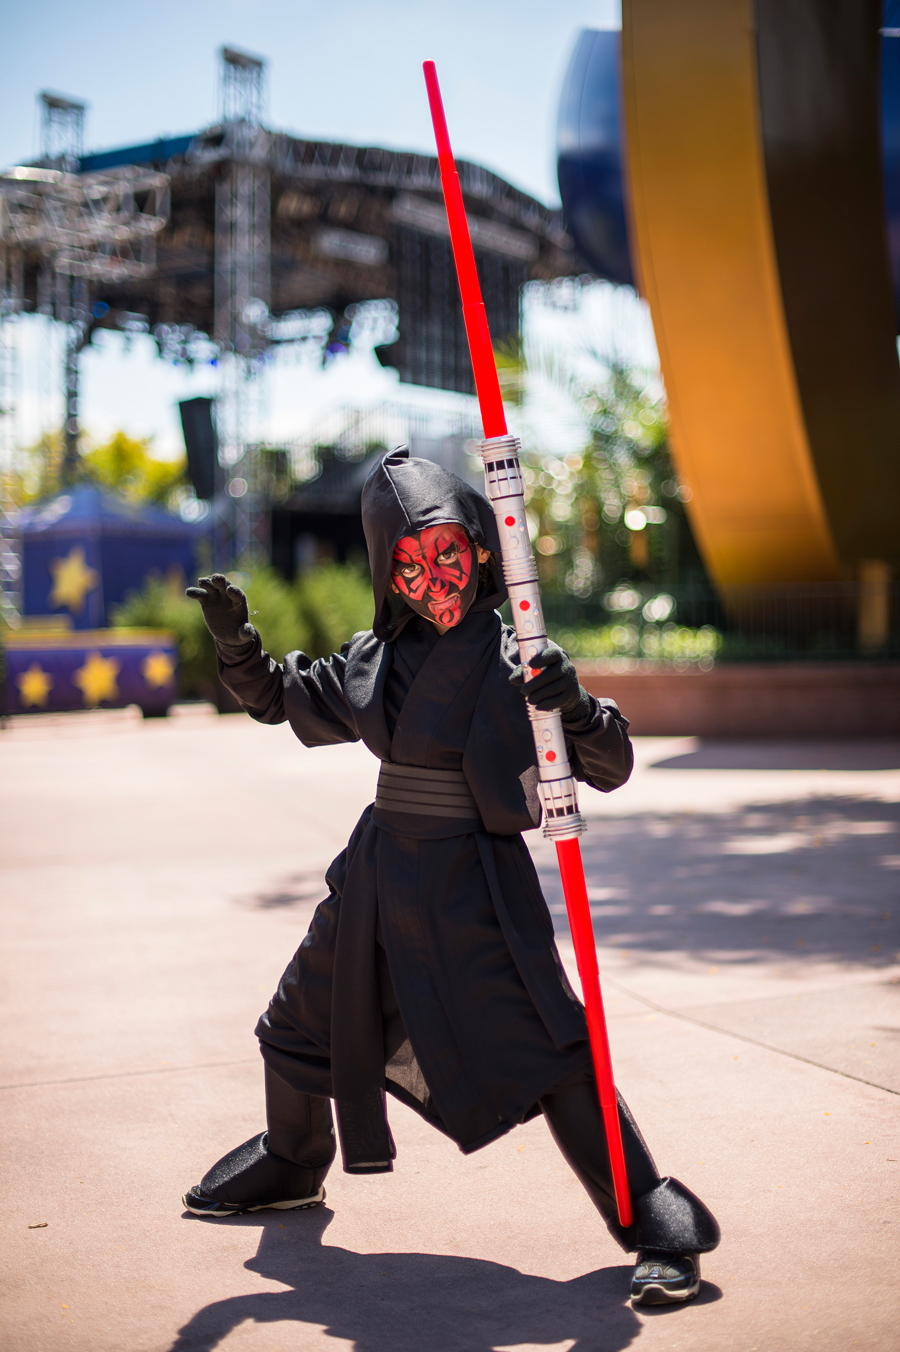 Walt Disney World Resort More Walt Disney World Resort Stories & Best Star Wars Weekends Costumes at Disneyu0027s Hollywood Studios at ...